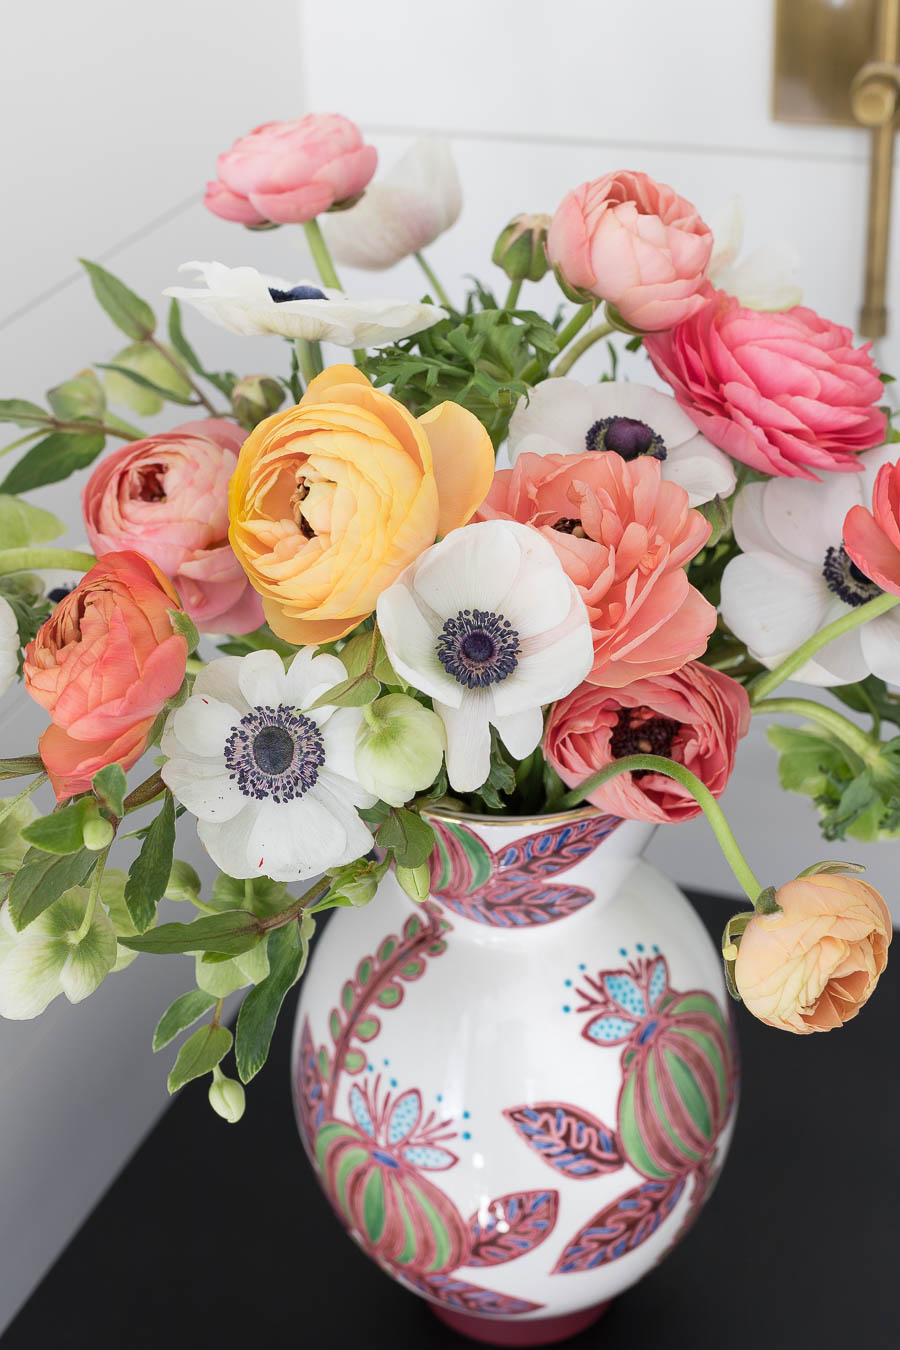 Love this colorful floral vase!